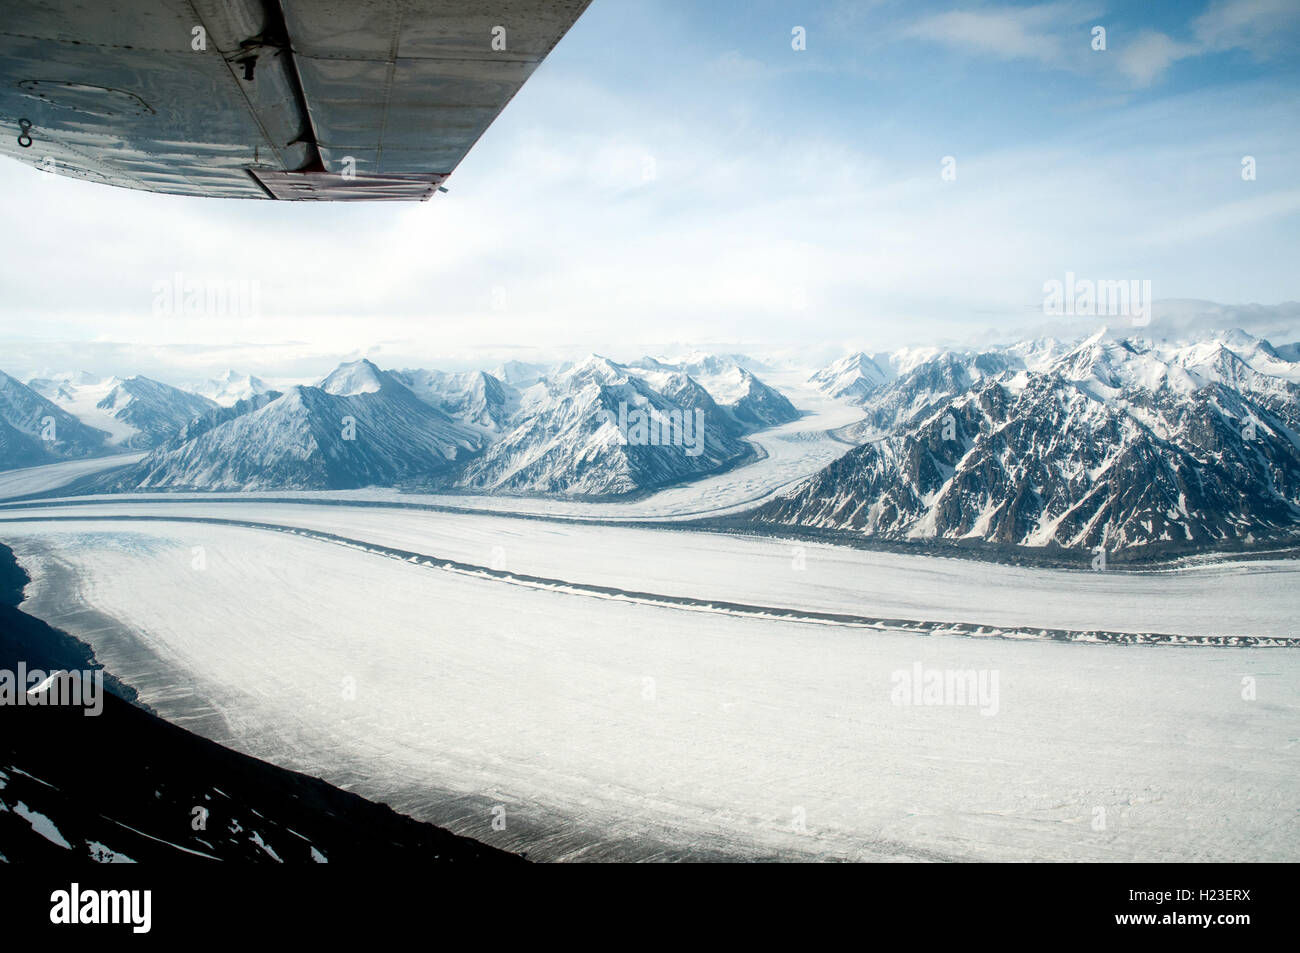 An aerial view of the Kaskawulsh glacier in Kluane National Park in the Yukon Territory, Canada. - Stock Image